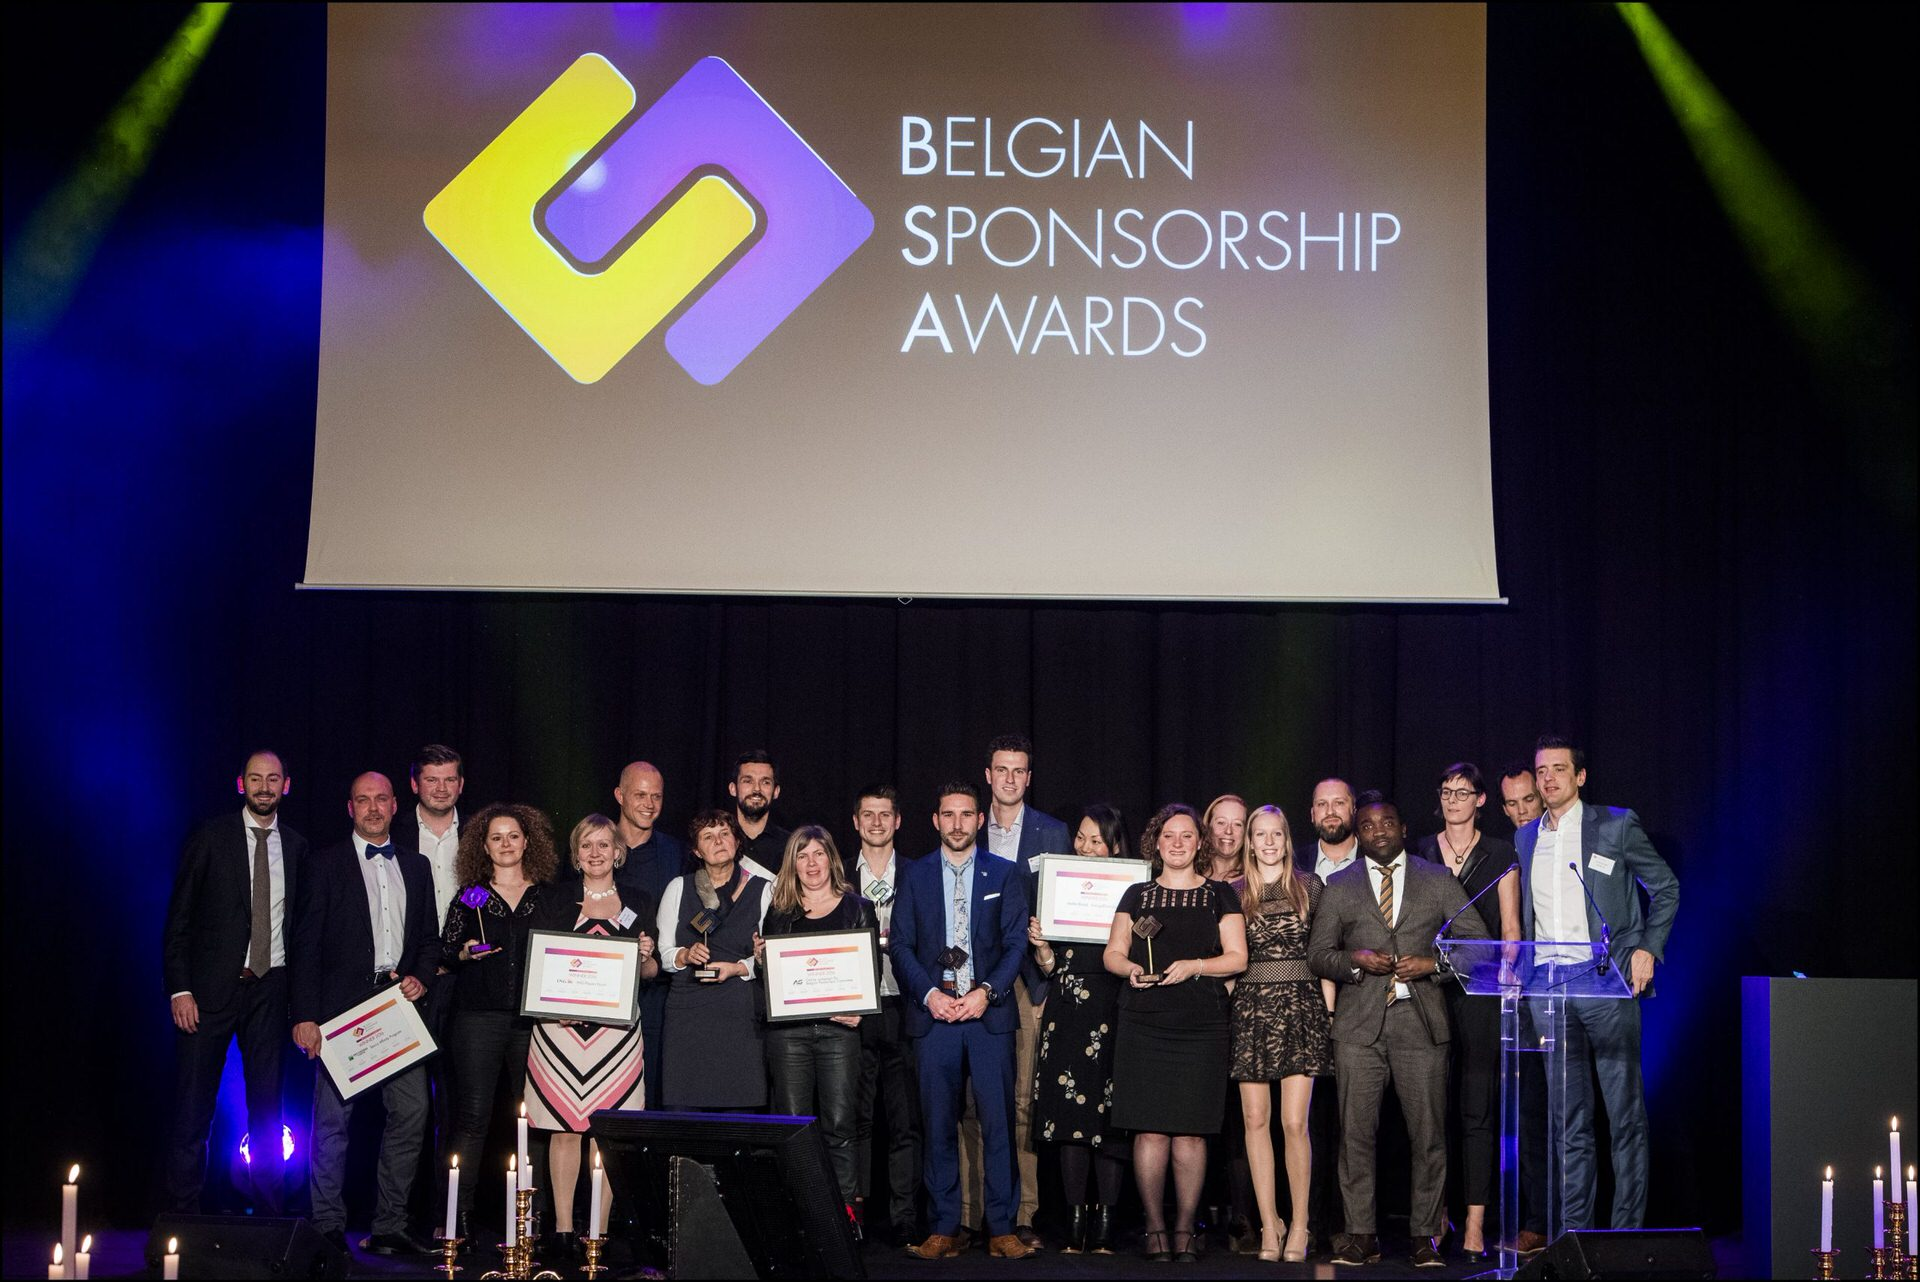 Winners of Belgian Sponsorship Awards 2017